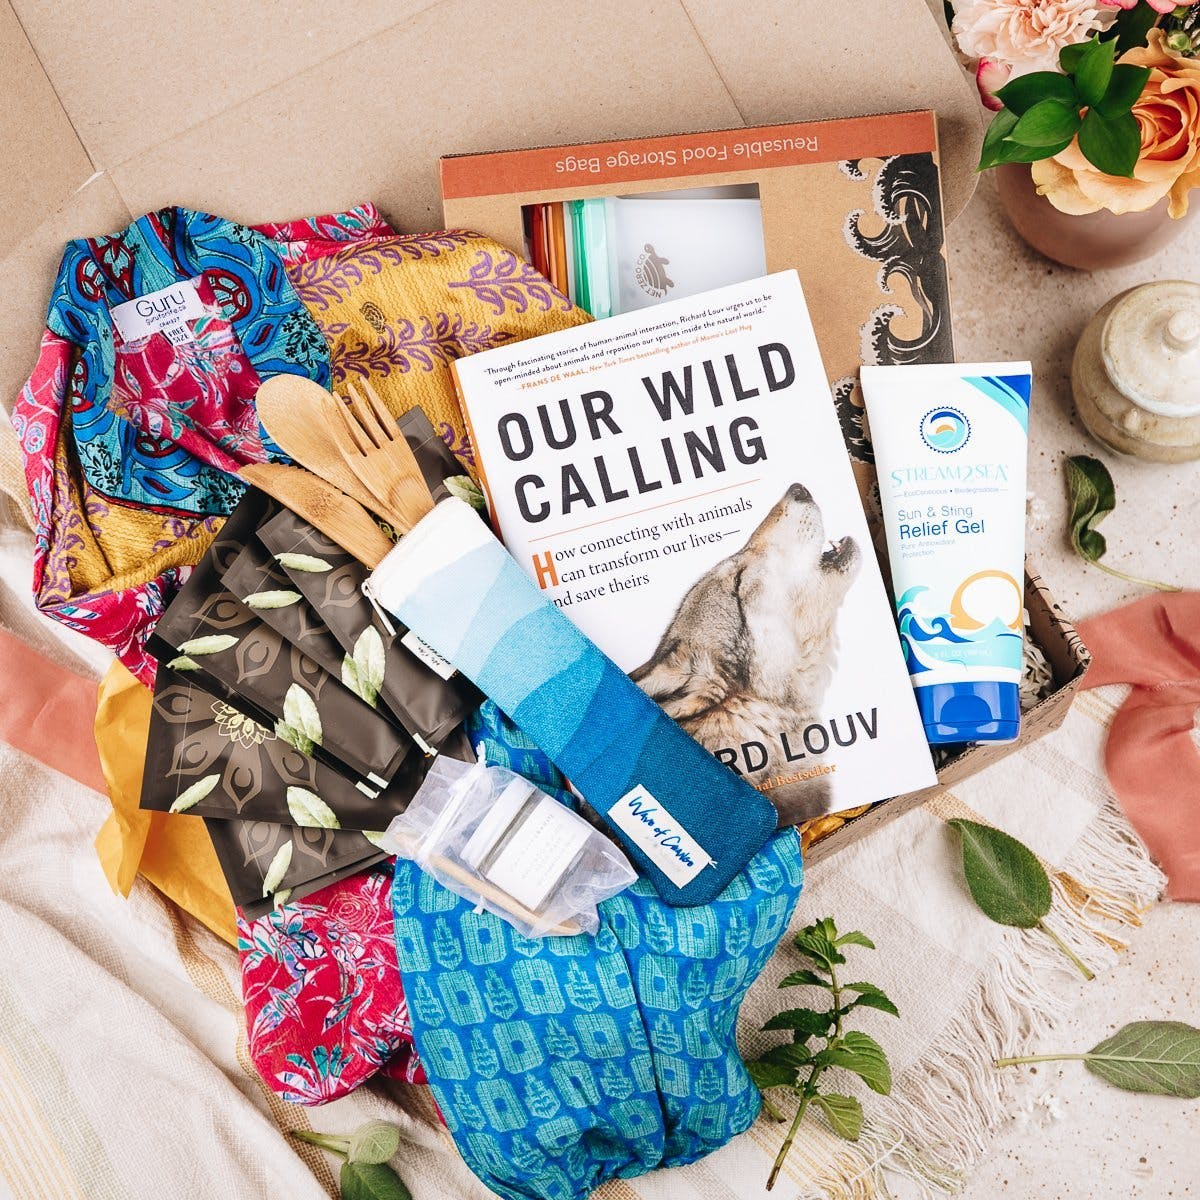 earthlove - self-care subscription box with products in it